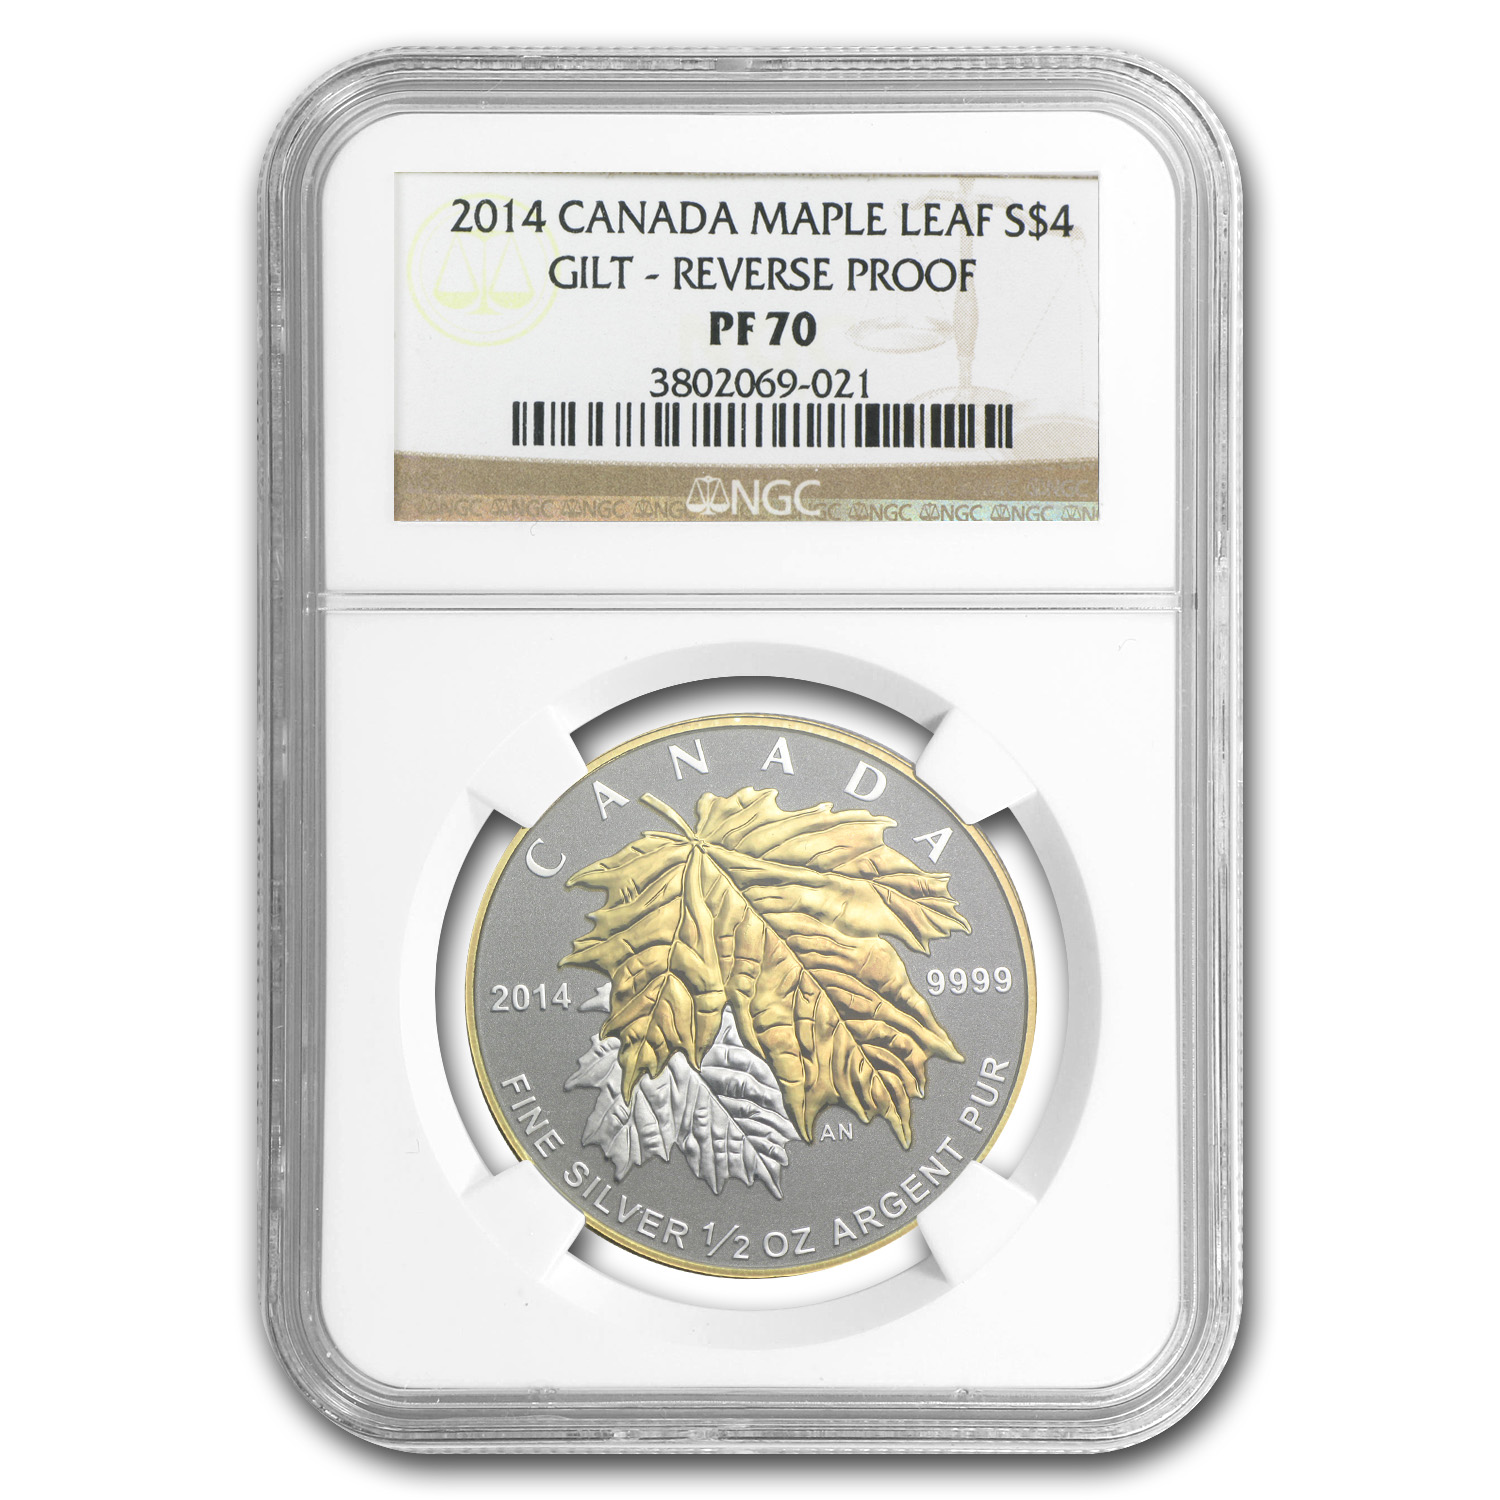 2014 1/2 oz Silver Canadian $4 Maple Leaf Gilt PF-70 NGC